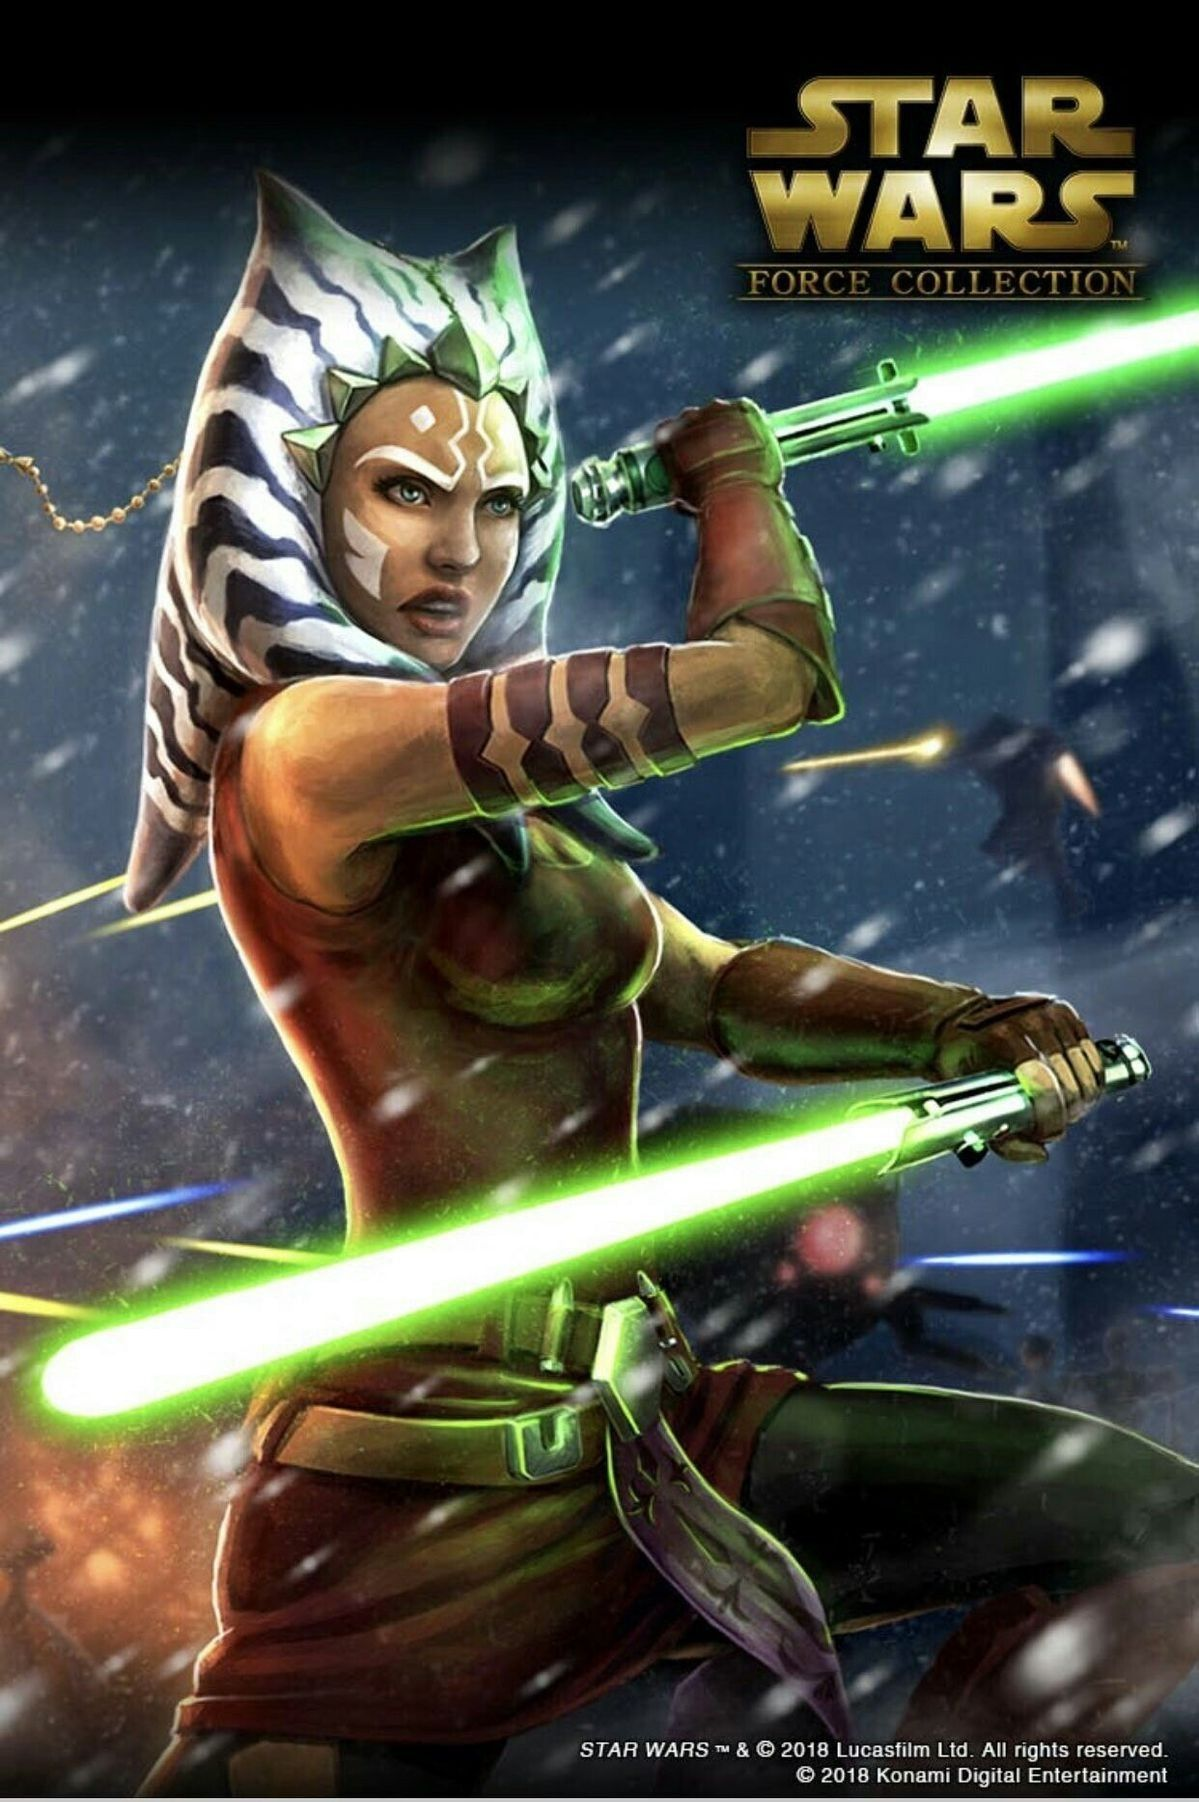 Ahsoka Tano Force Collection Star Wars Force Collection Star